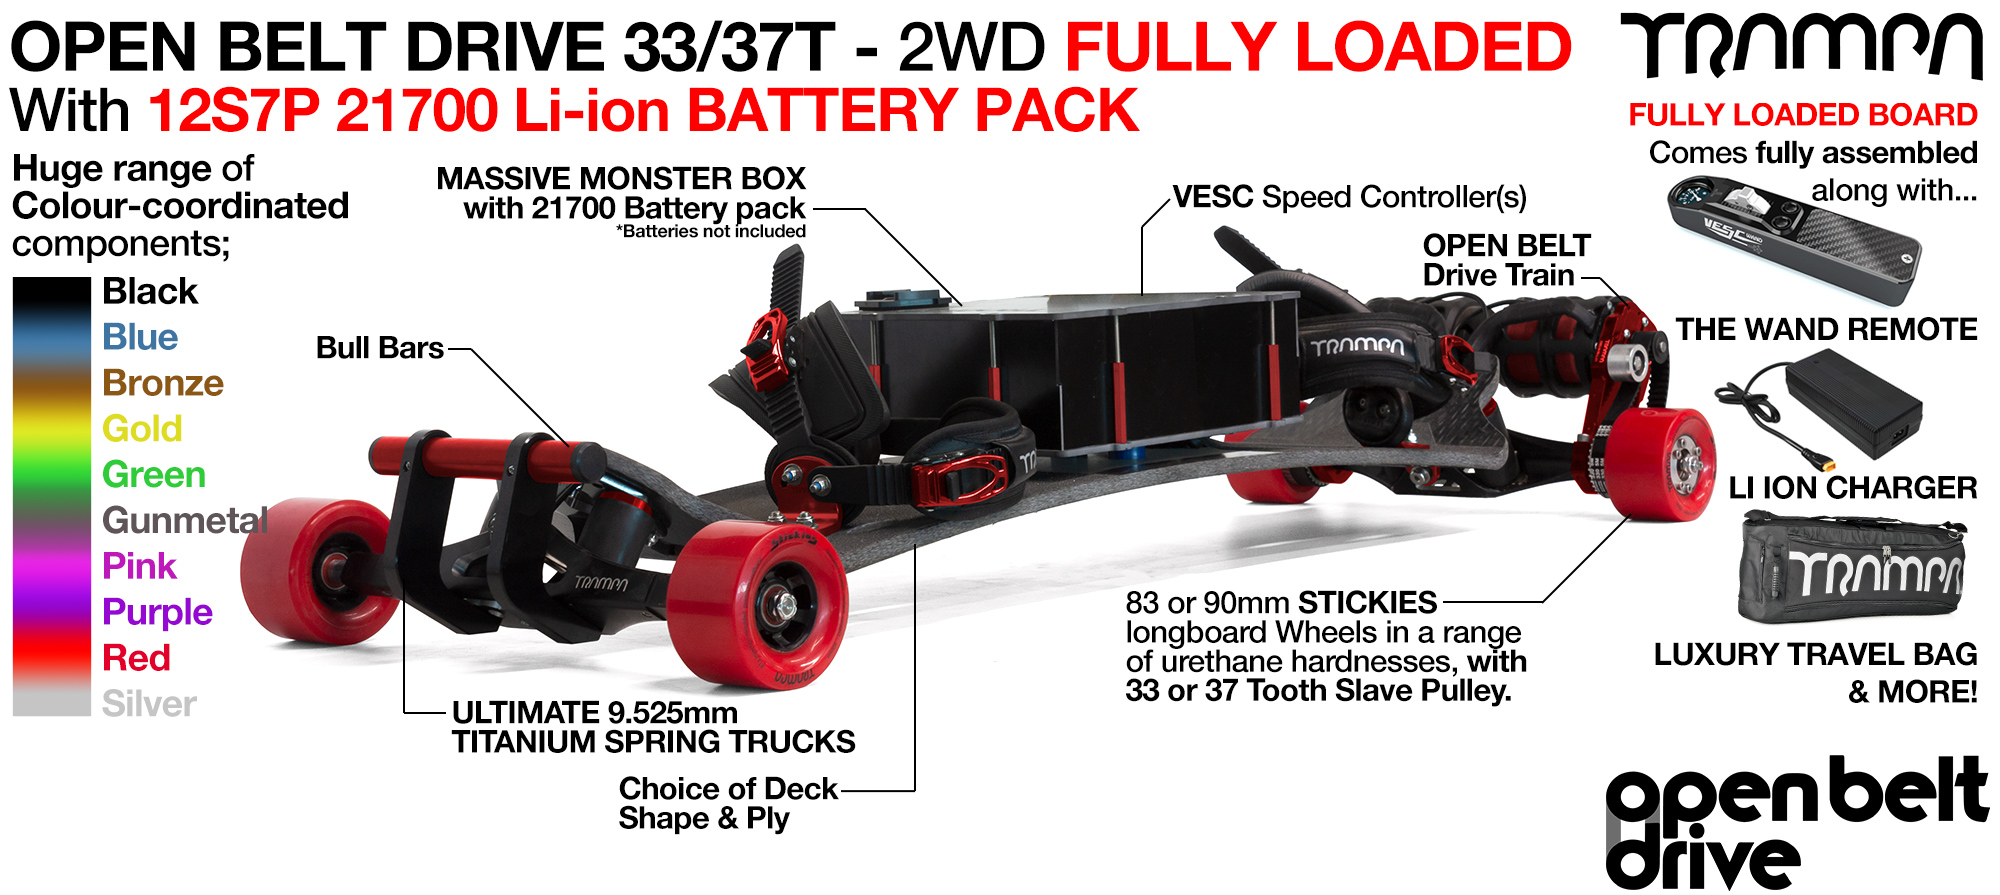 2WD 66T Open Belt Drive TRAMPA E-MTB with 83 or 90mm STICKIES Wheels & 33/37 Tooth Pulleys - LOADED 21700 CELL Pack